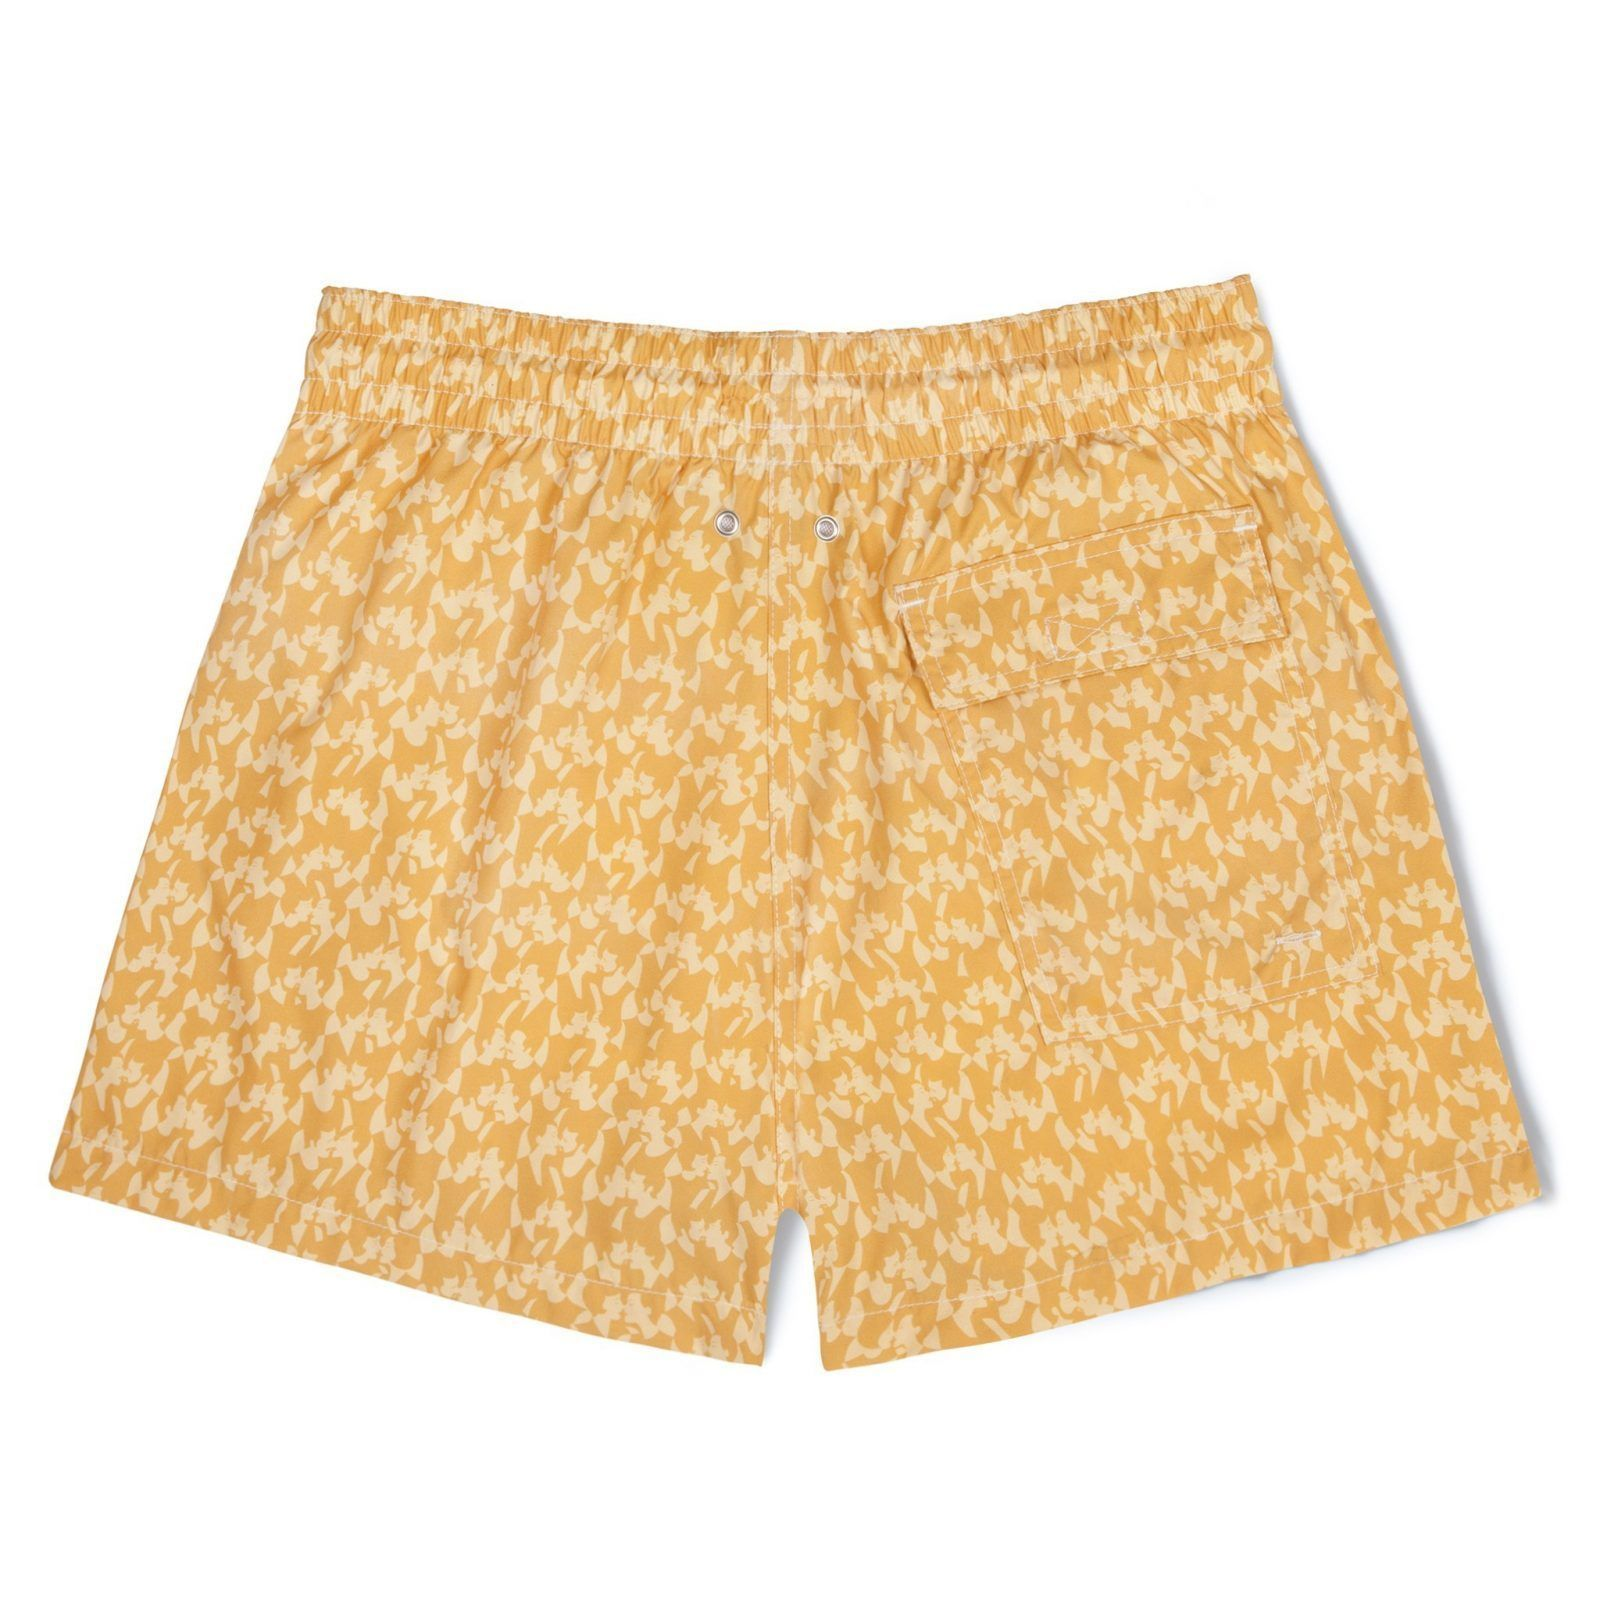 Short-Length Swim Shorts-478